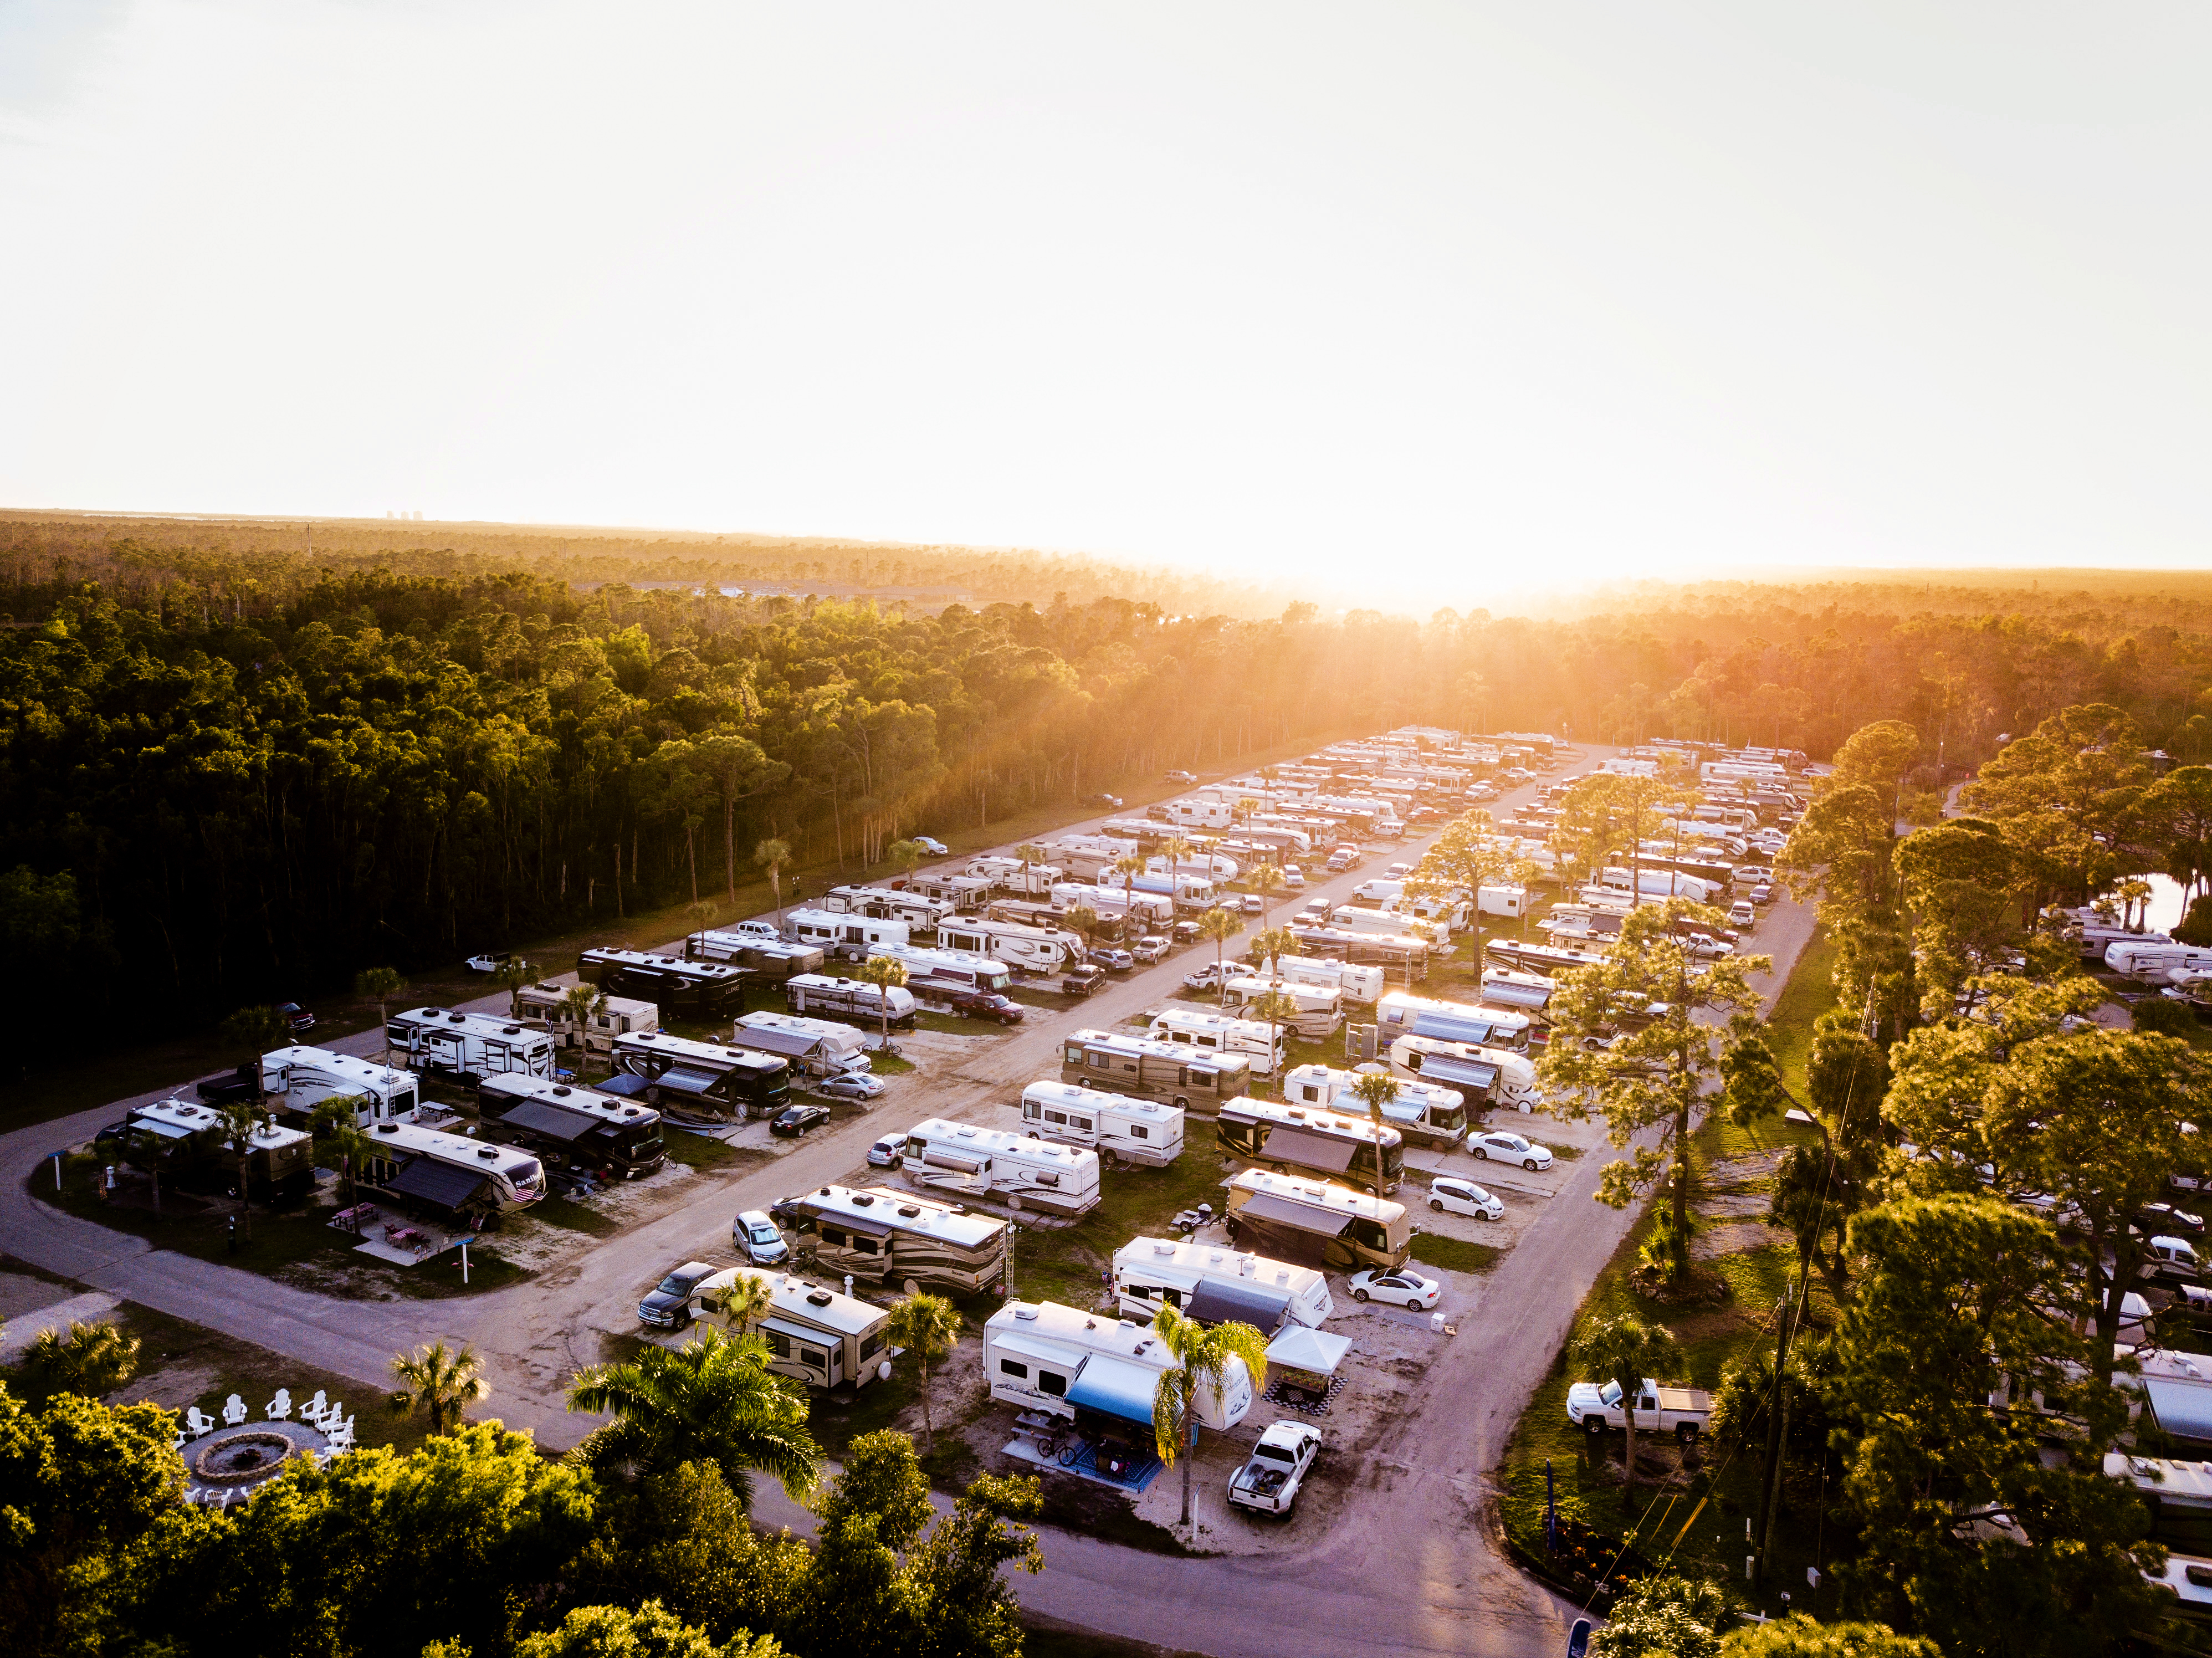 Overview of a section within Shady Acres RV Travel Park